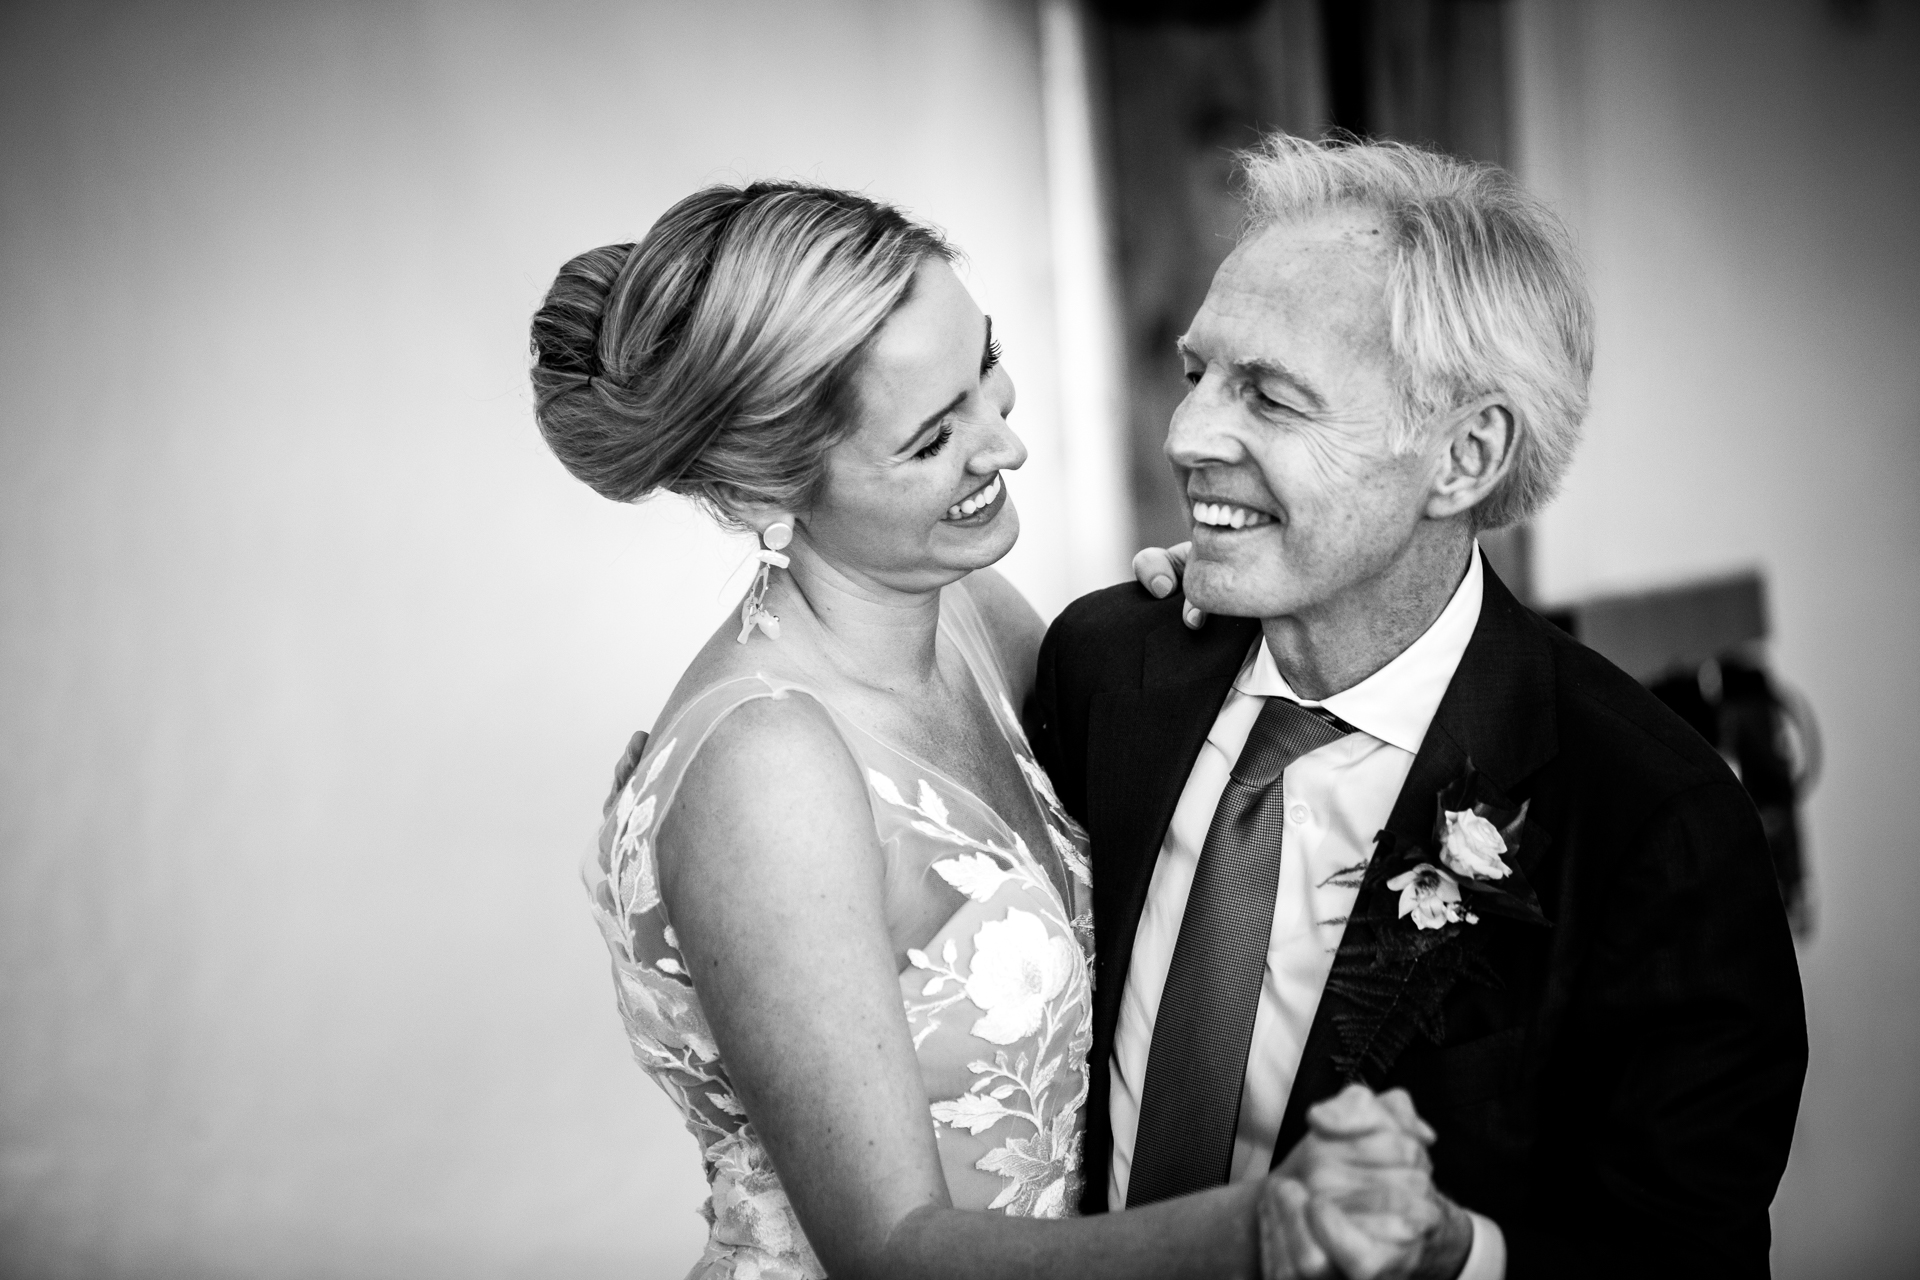 South of France Wedding Photographer | The bride enjoyed her wedding day with a dance with her father.